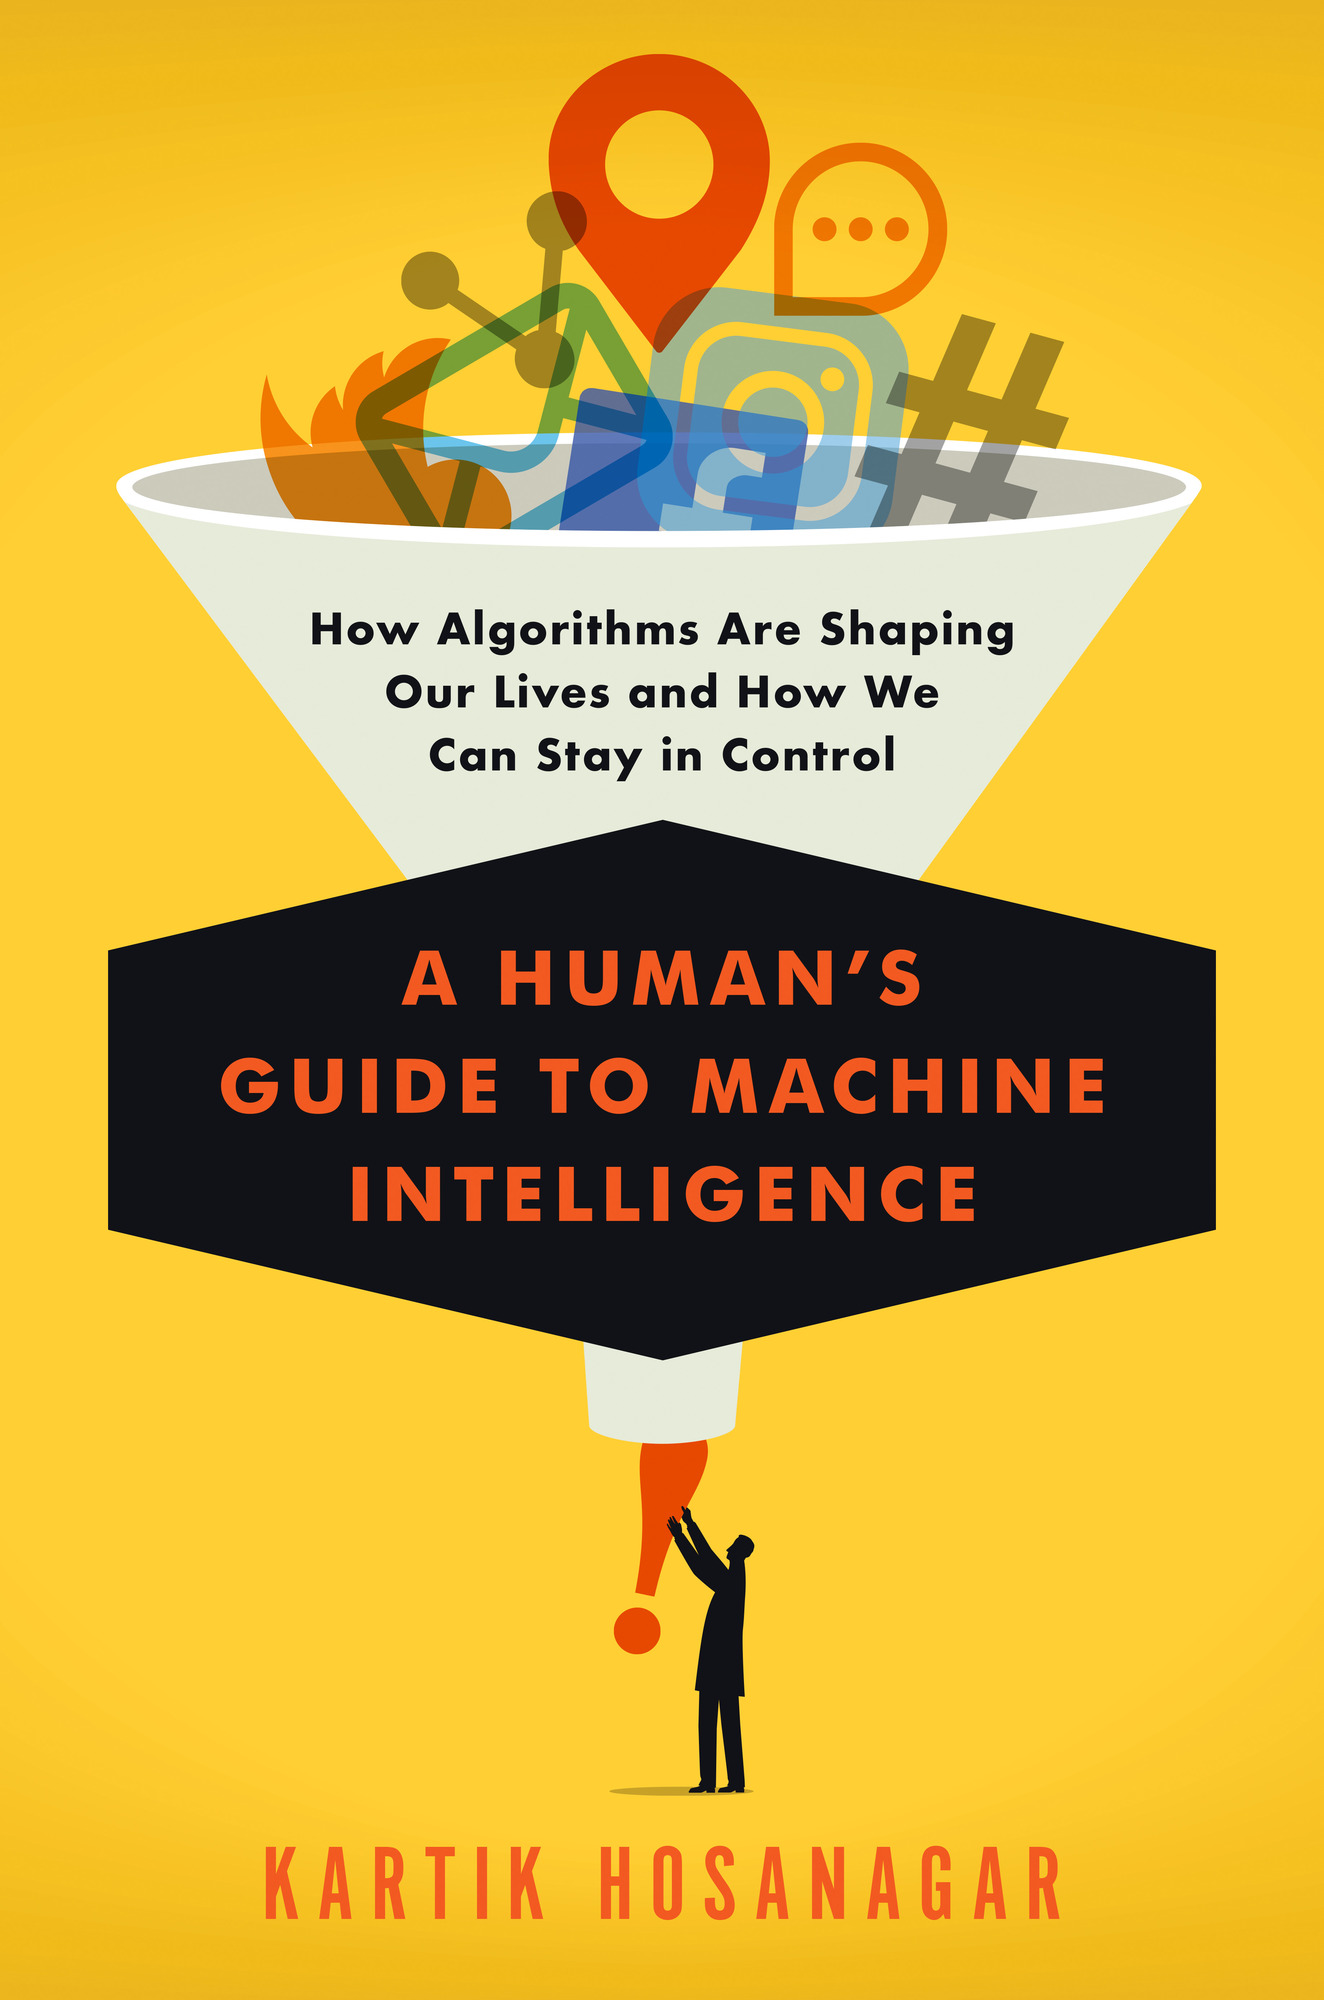 A Human's Guide to Machine Intelligence Cover Image